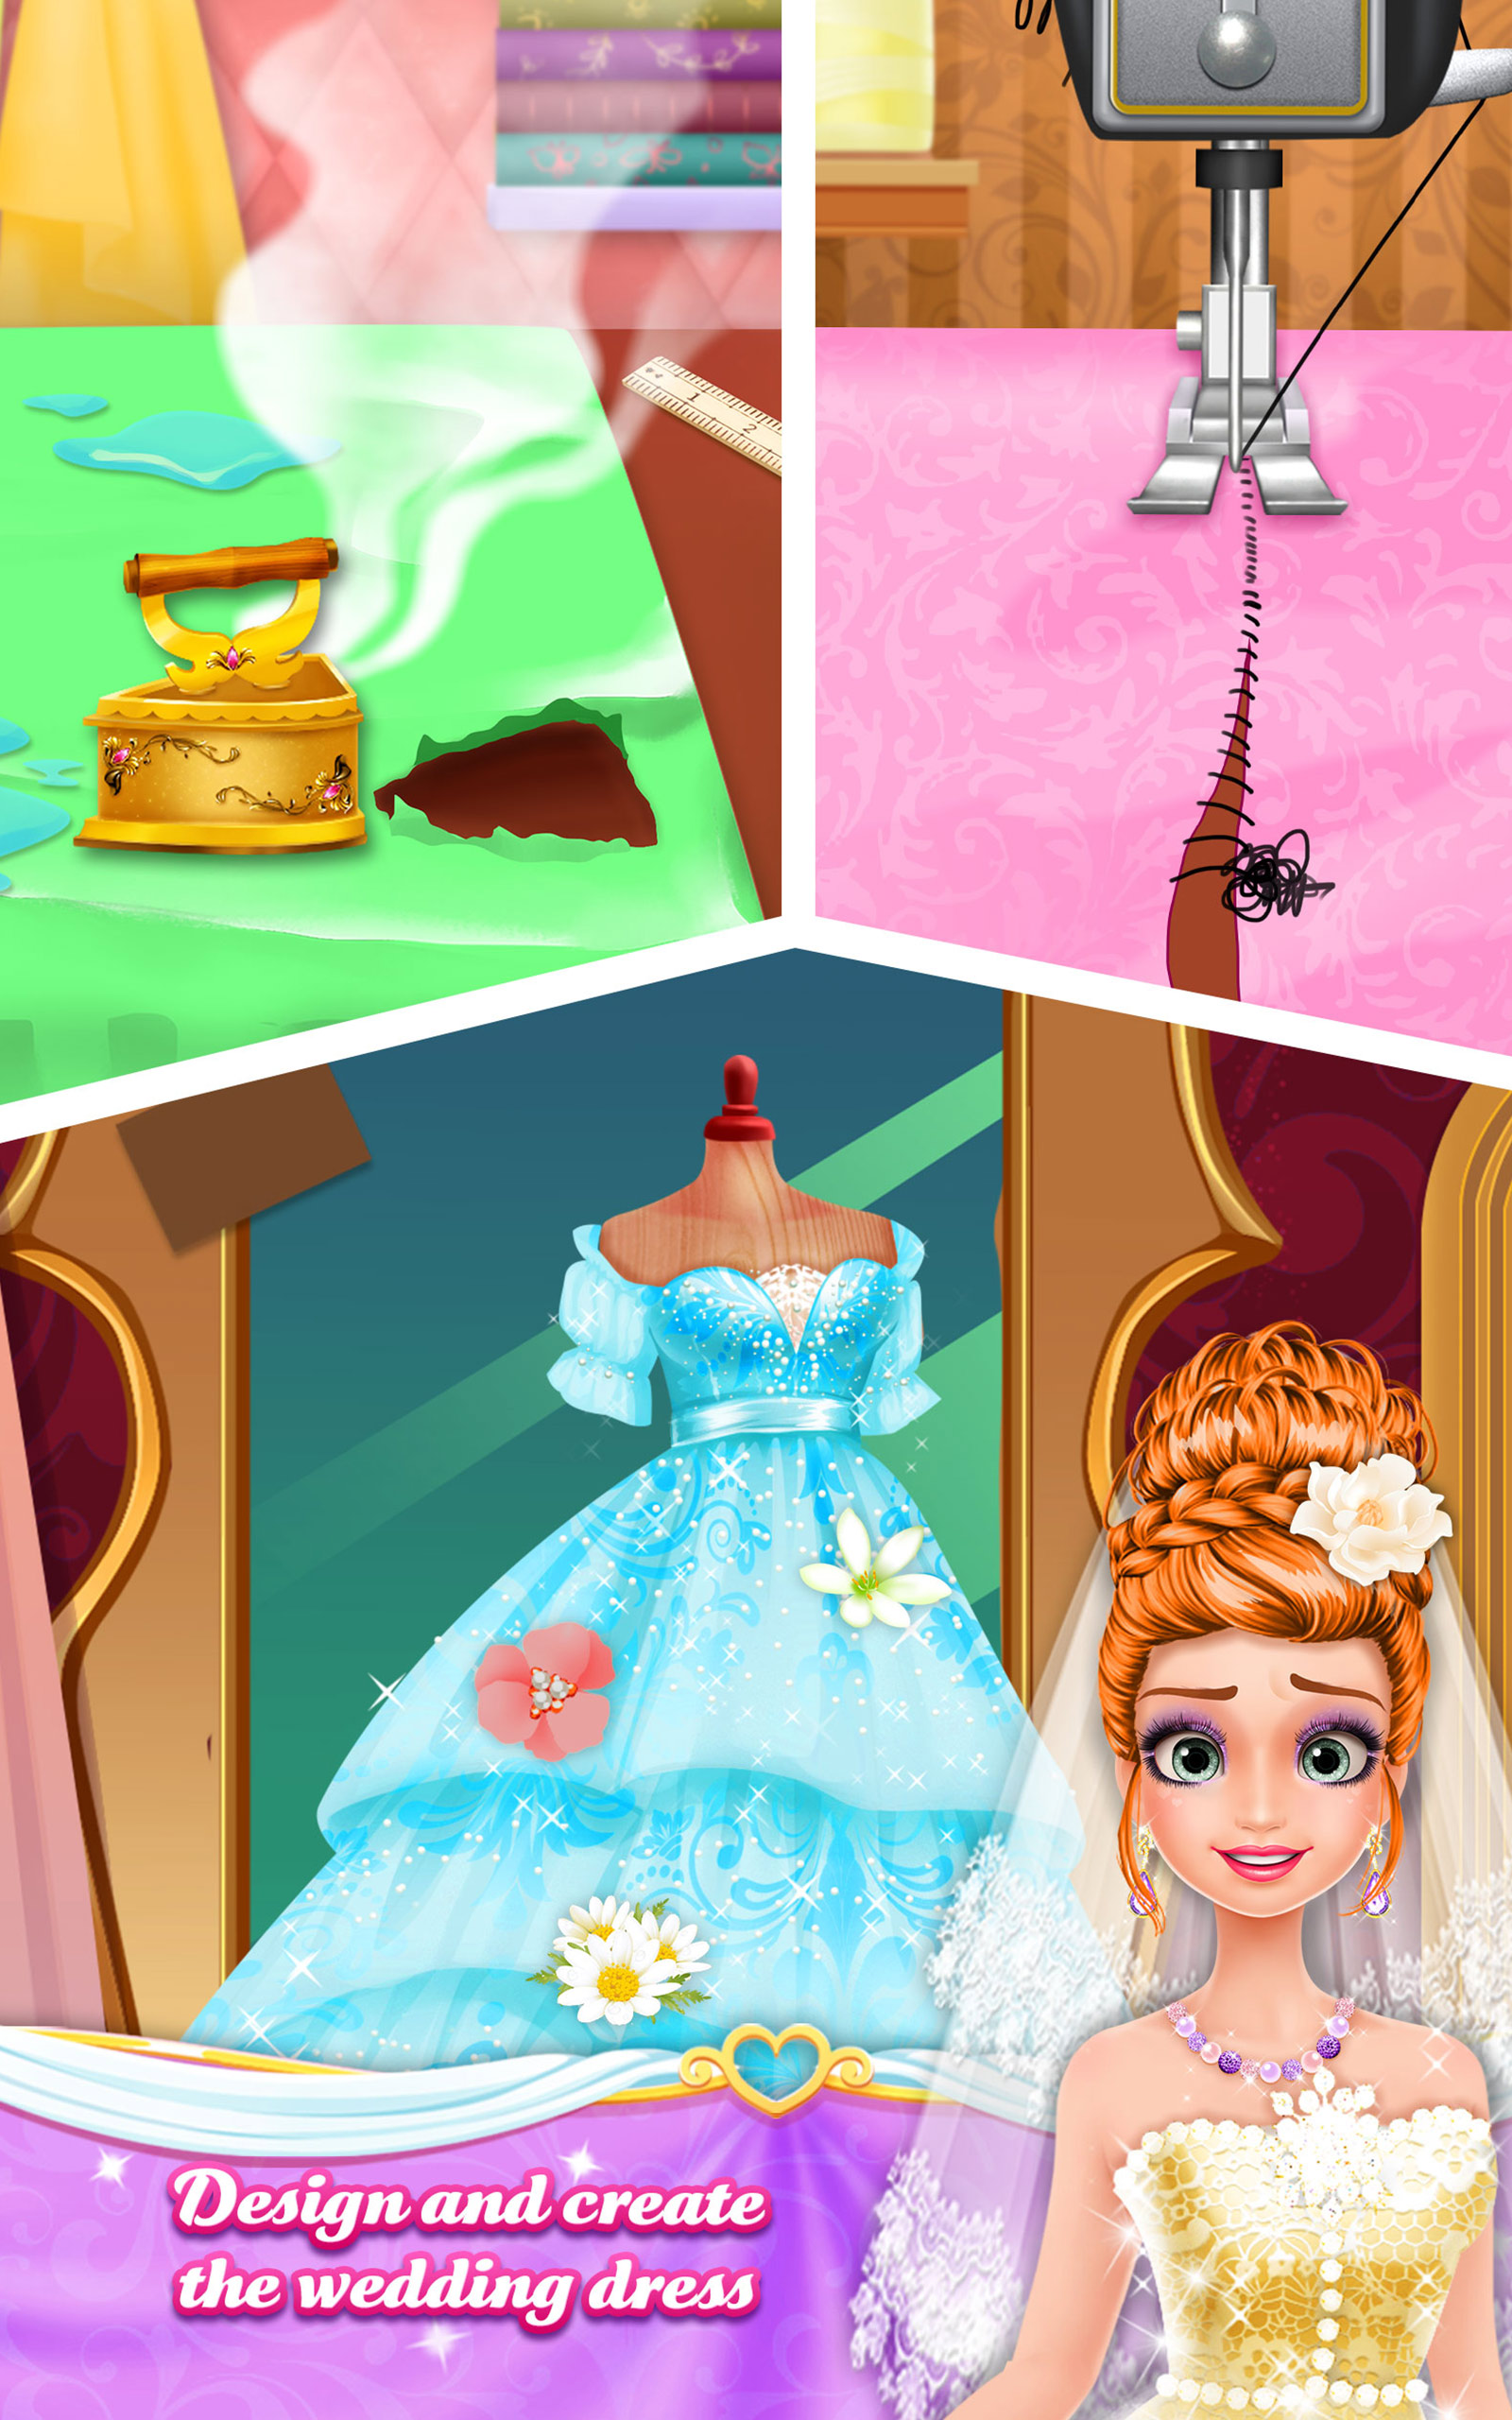 Amazon.com: Long Hair Princess Dream Wedding: Appstore for Android